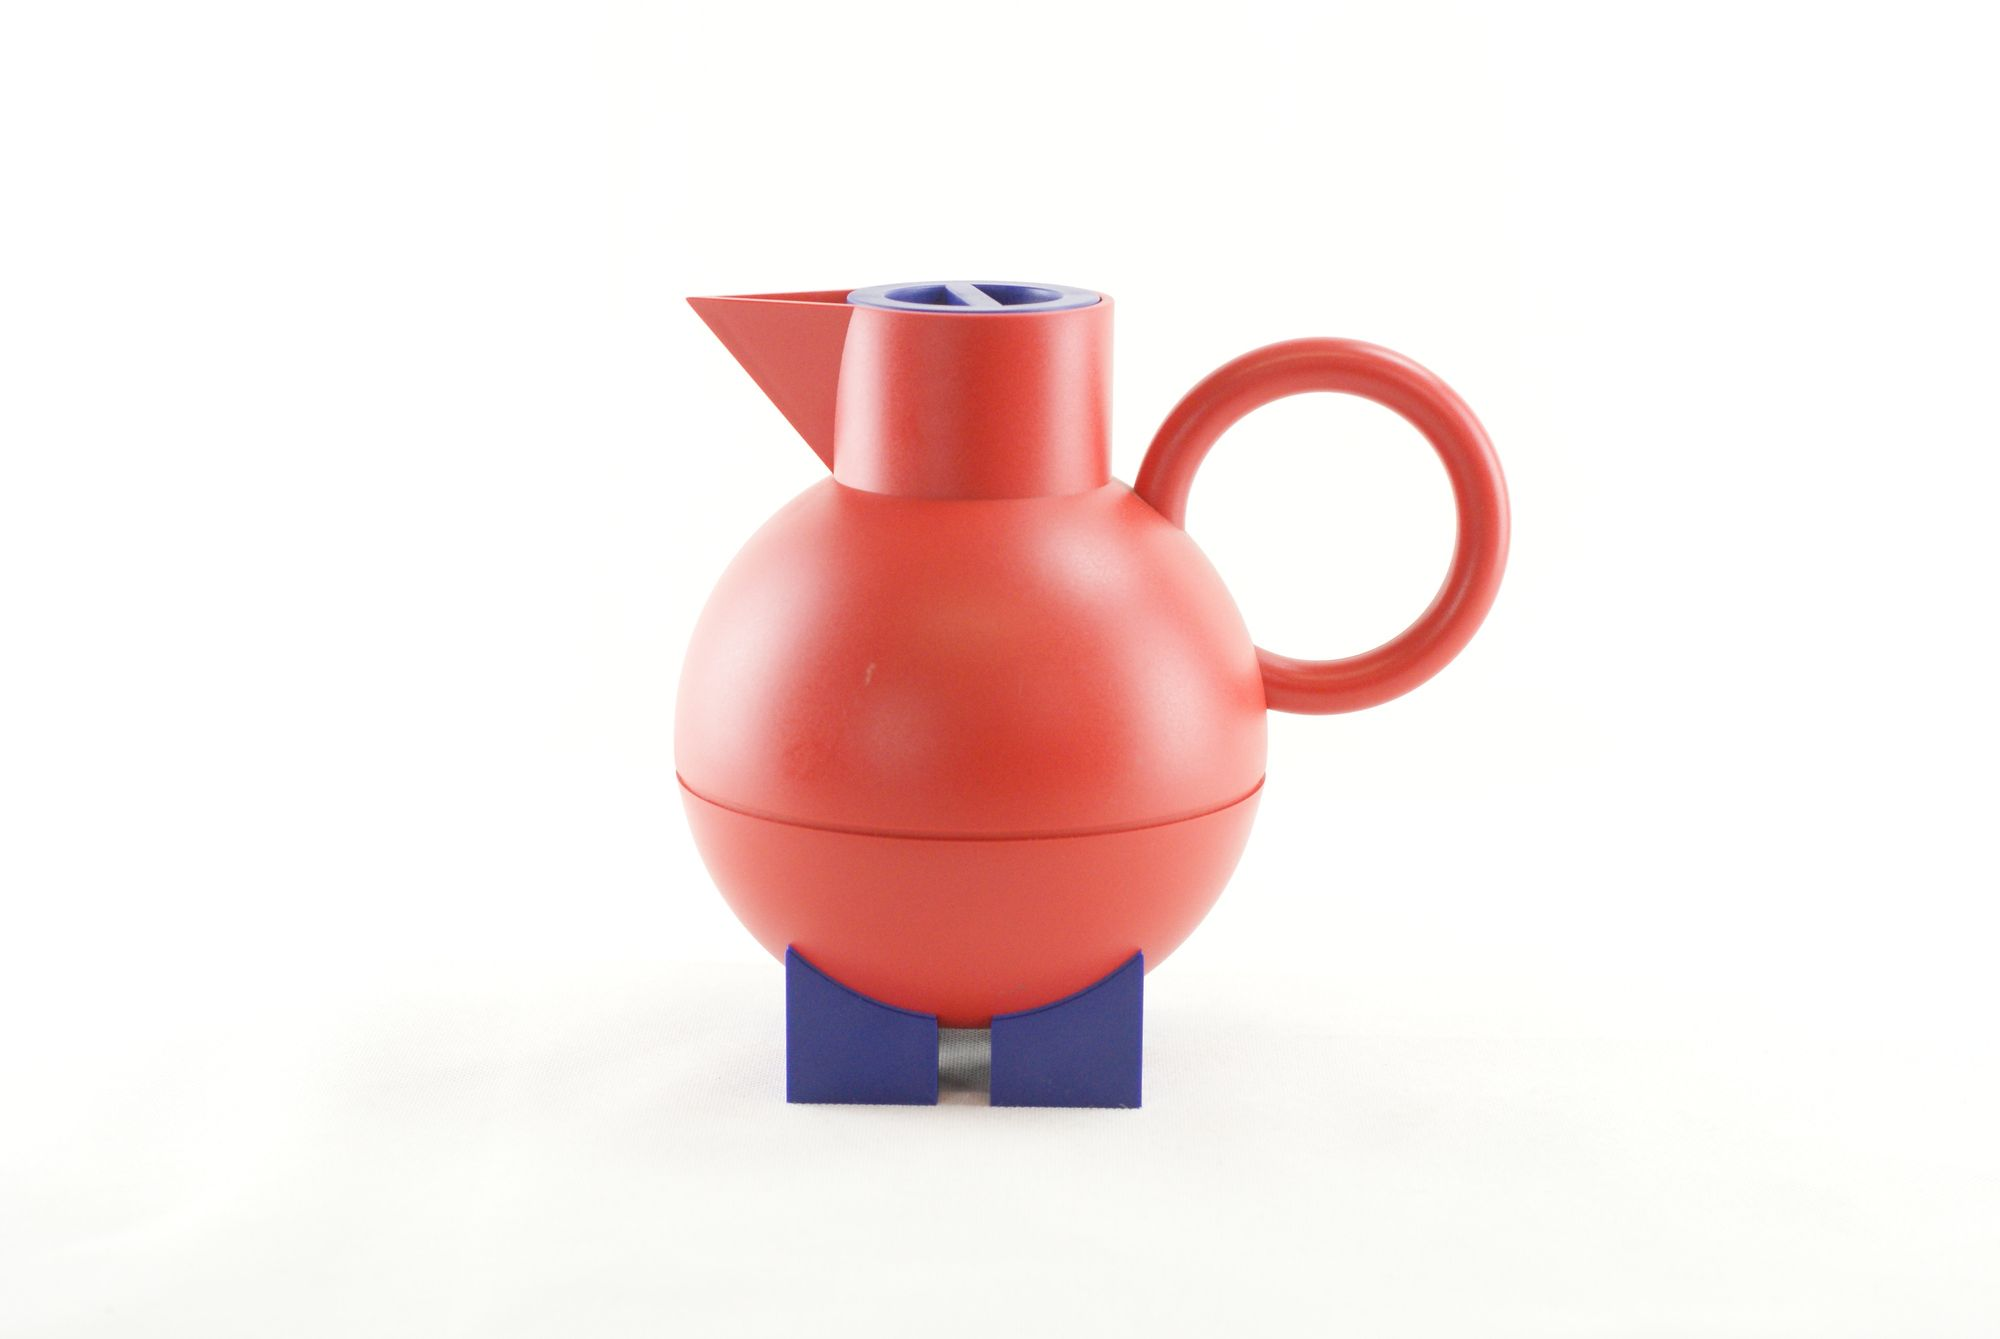 Vintage Alessi Euclid Thermos In Red And Blue By Michael Graves In 2020 Michael Graves Alessi Vintage